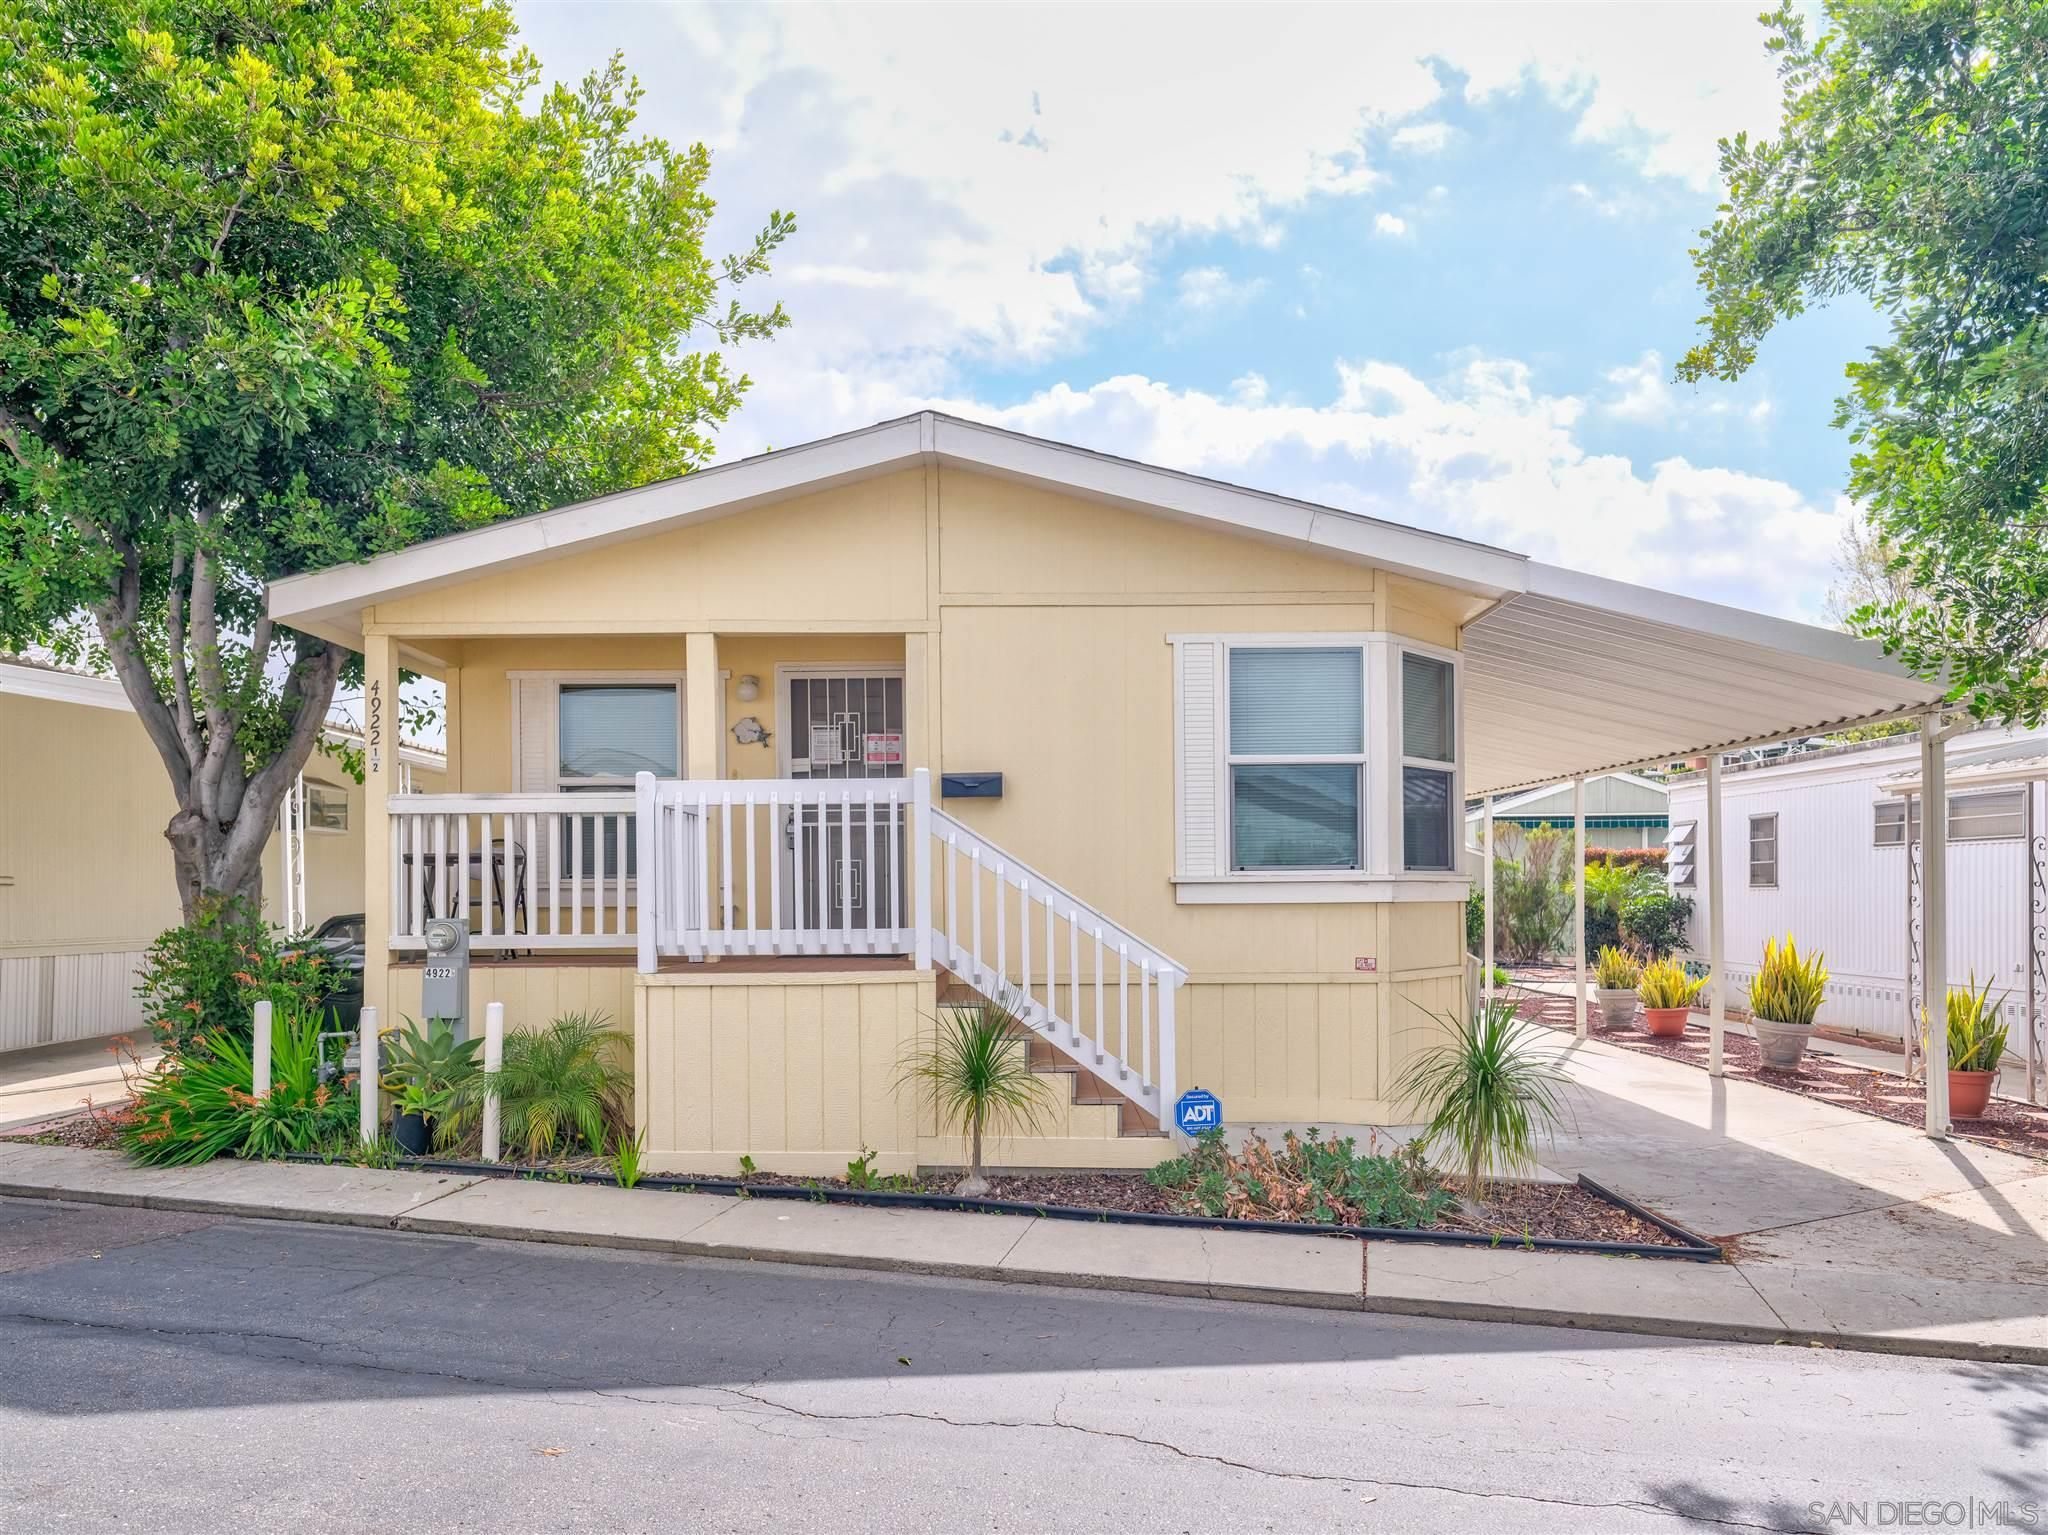 Main Photo: SAN DIEGO Manufactured Home for sale : 2 bedrooms : 4922 1/2 OLD CLIFFS RD